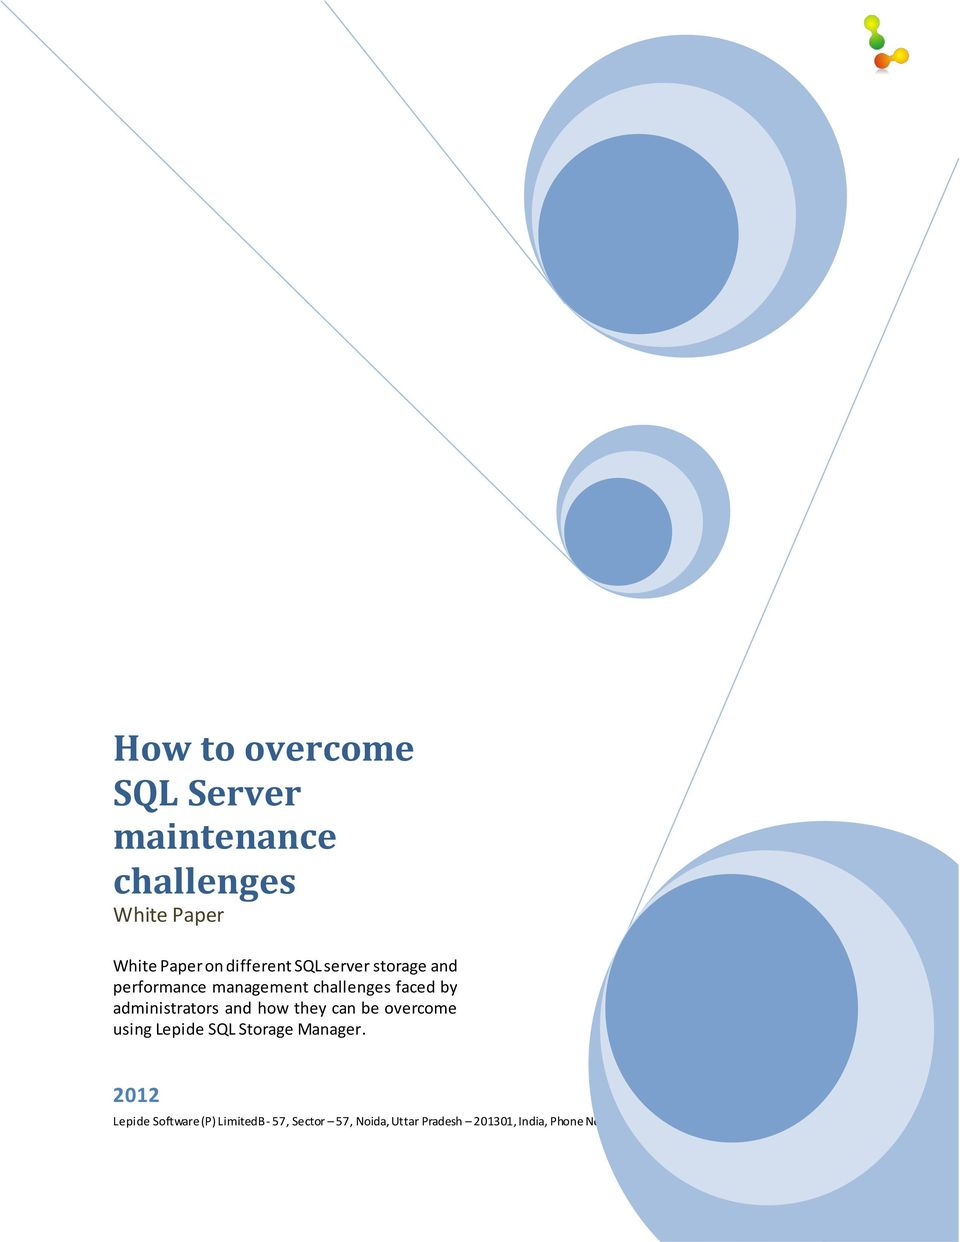 performance management challenges faced by administrators